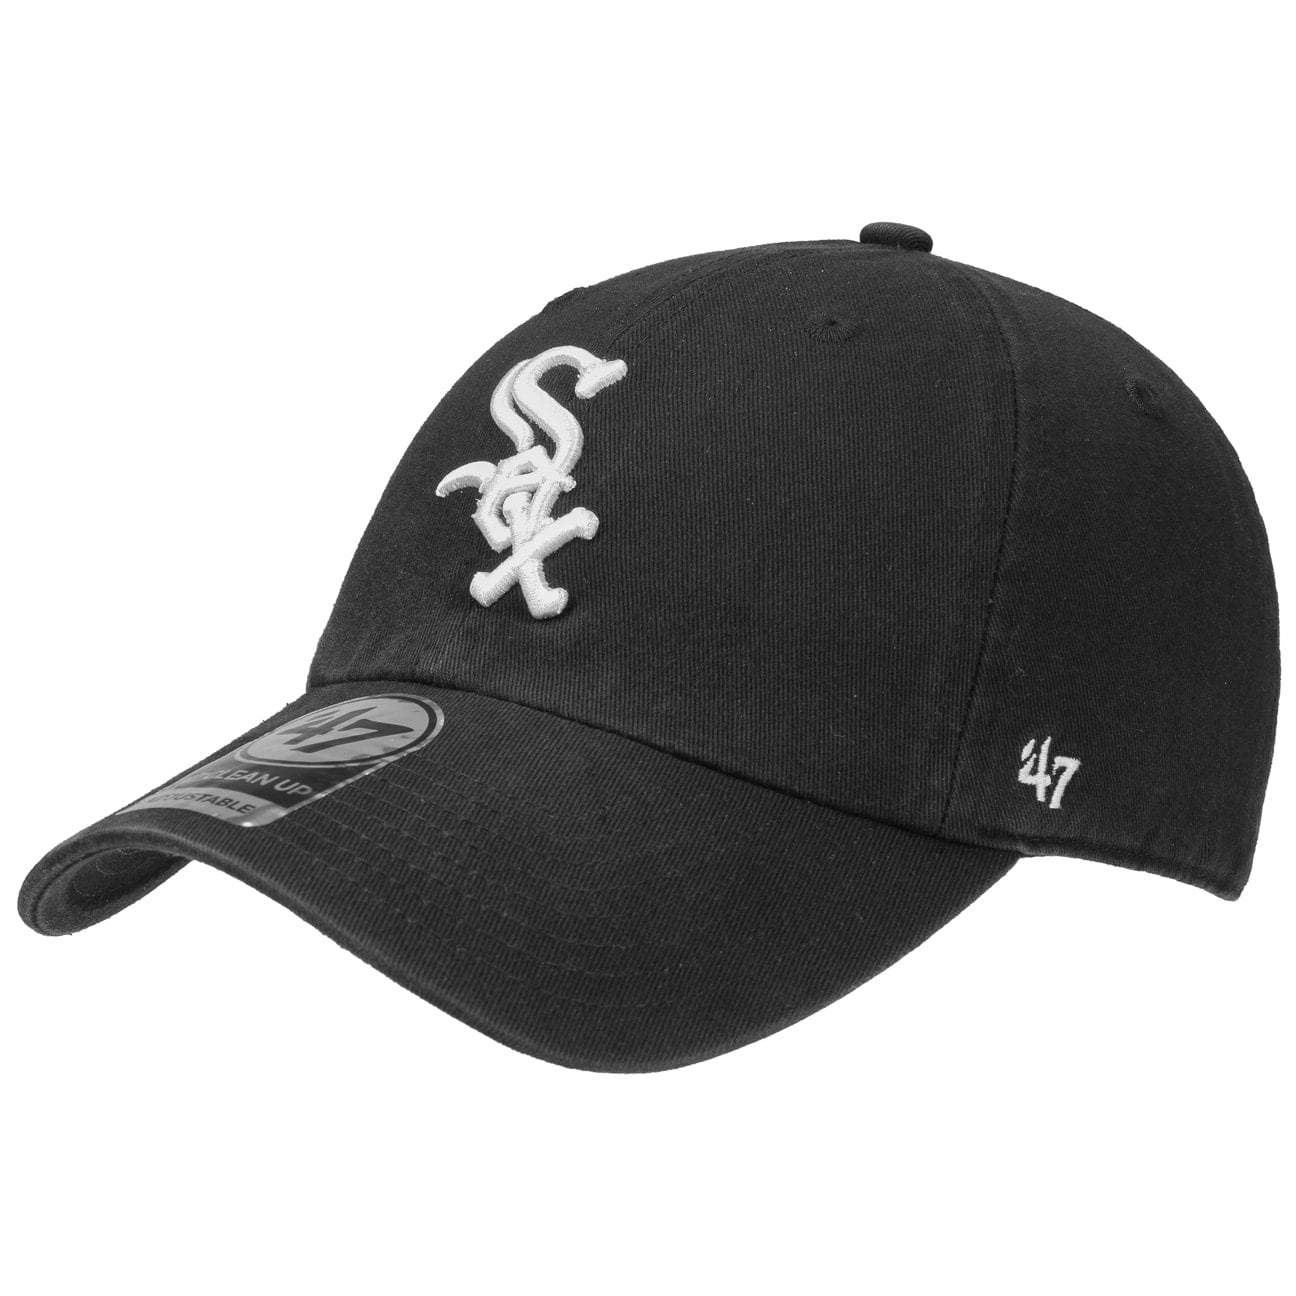 Clean Up White Sox Cap by 47 Brand  gorra de baseball